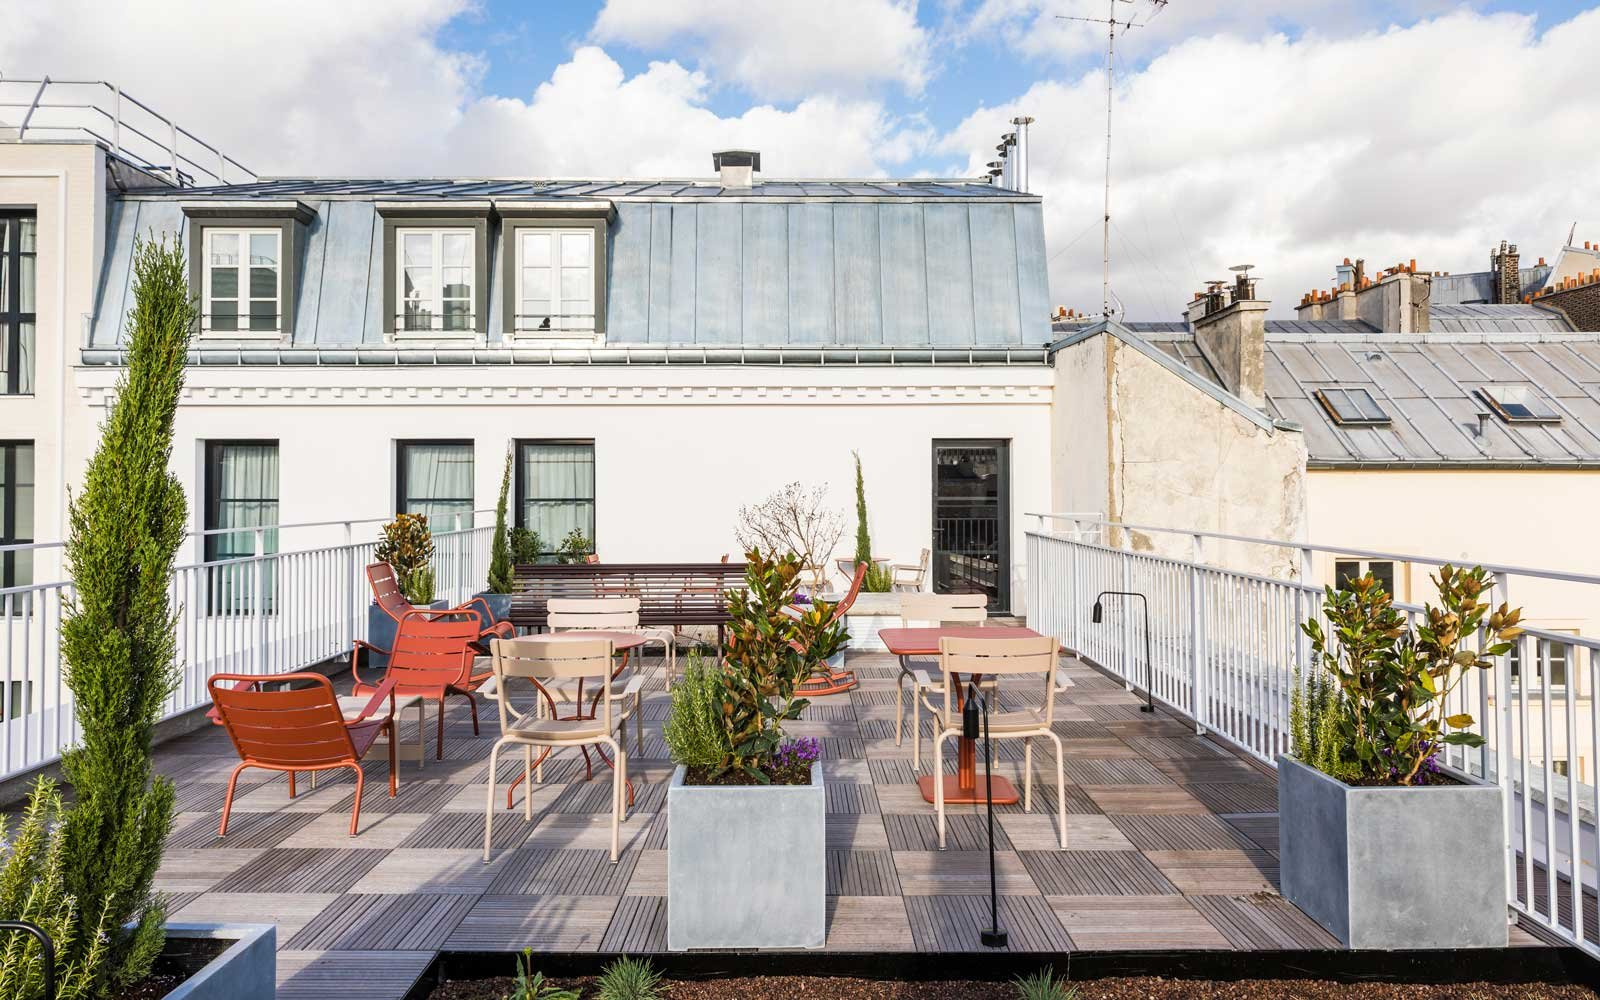 Rooftop seating at Le Grand Quartier Hotel in Paris